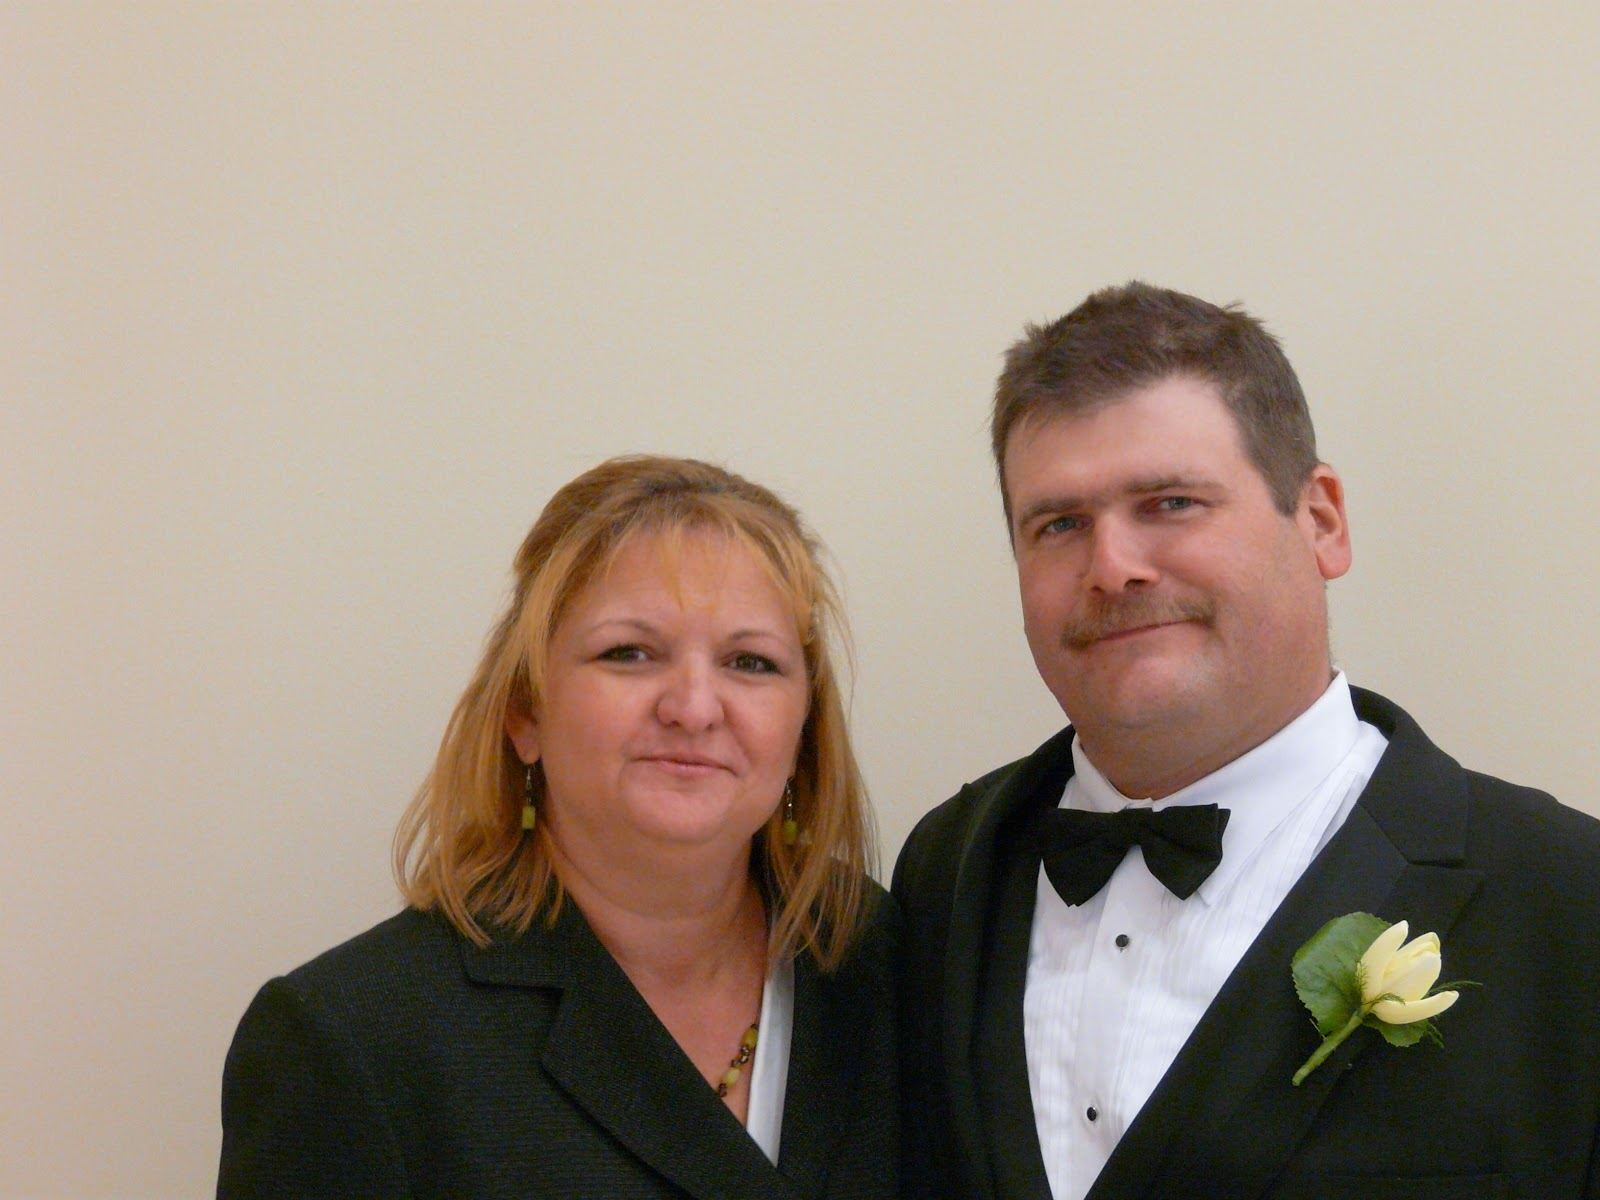 Our Wedding, photos by Michelle Bost - 015.JPG